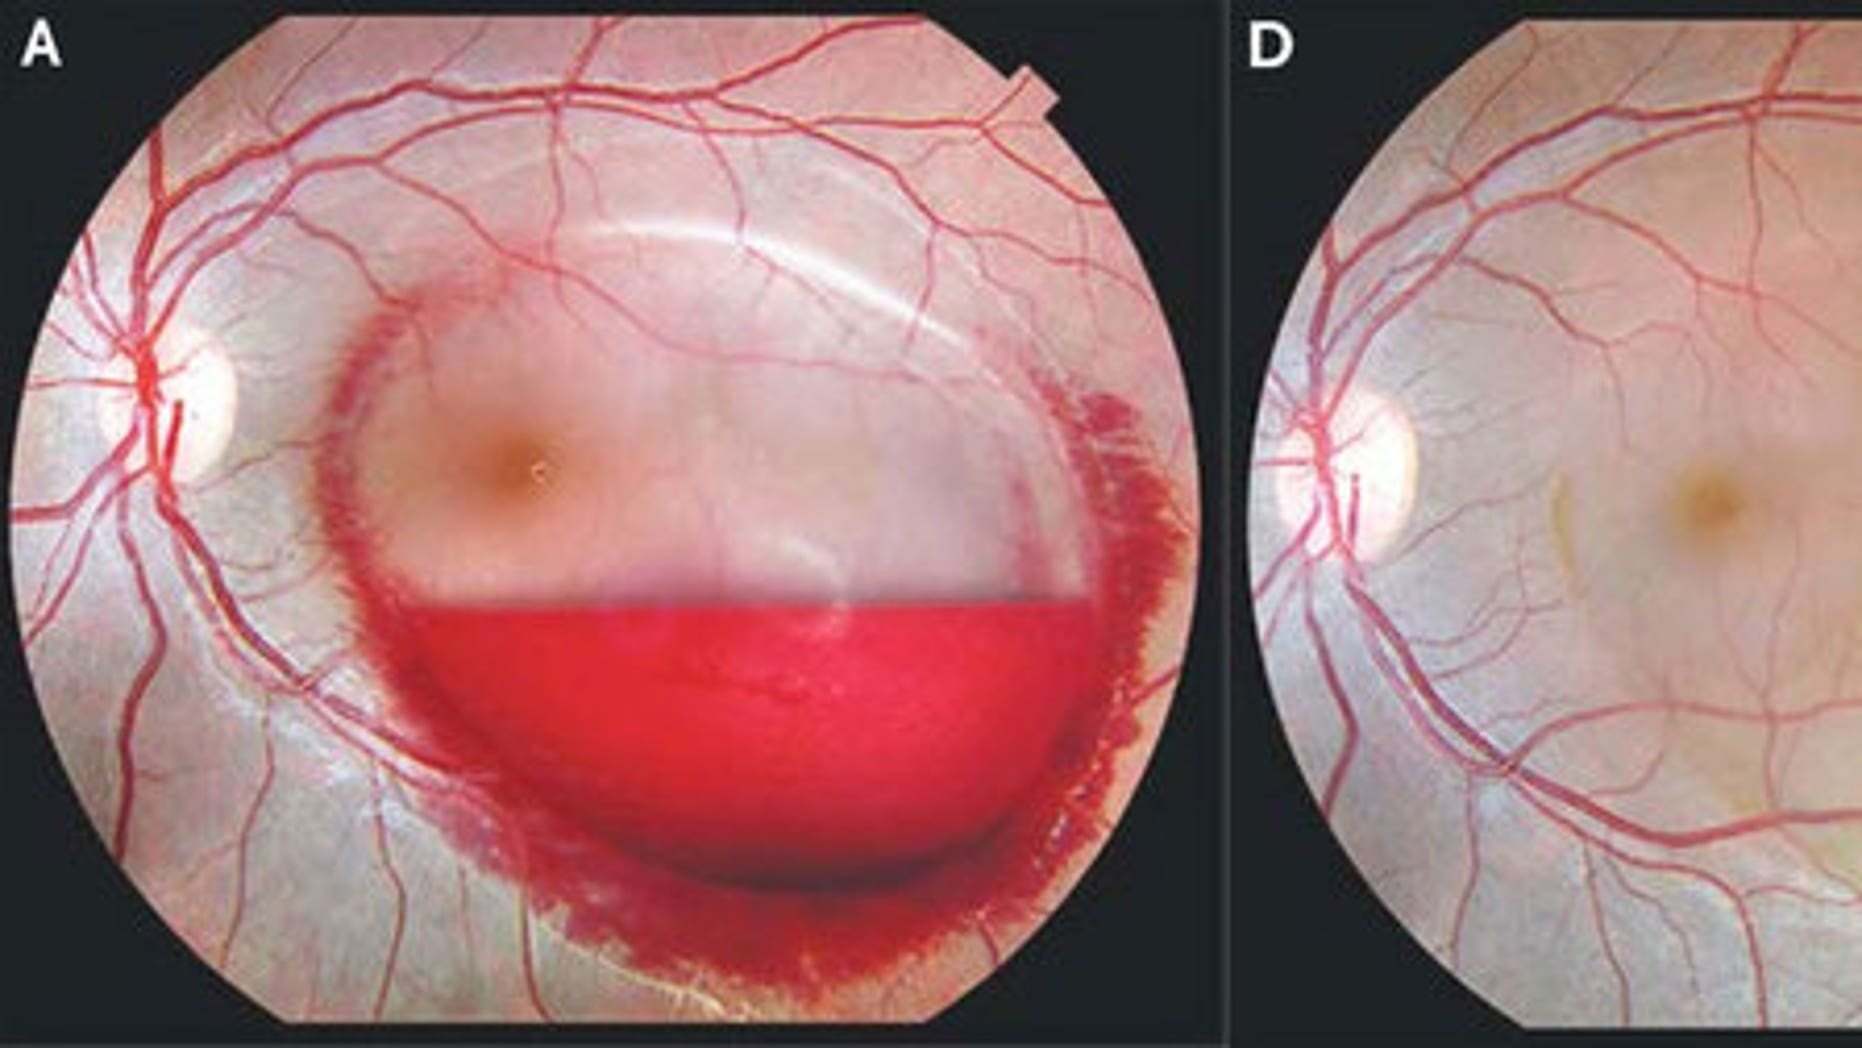 Forceful vomiting resulting from morning sickness caused a woman to burst a blood vessel in her left eye. Above, an image of the eye hemorrhage before and after it healed.